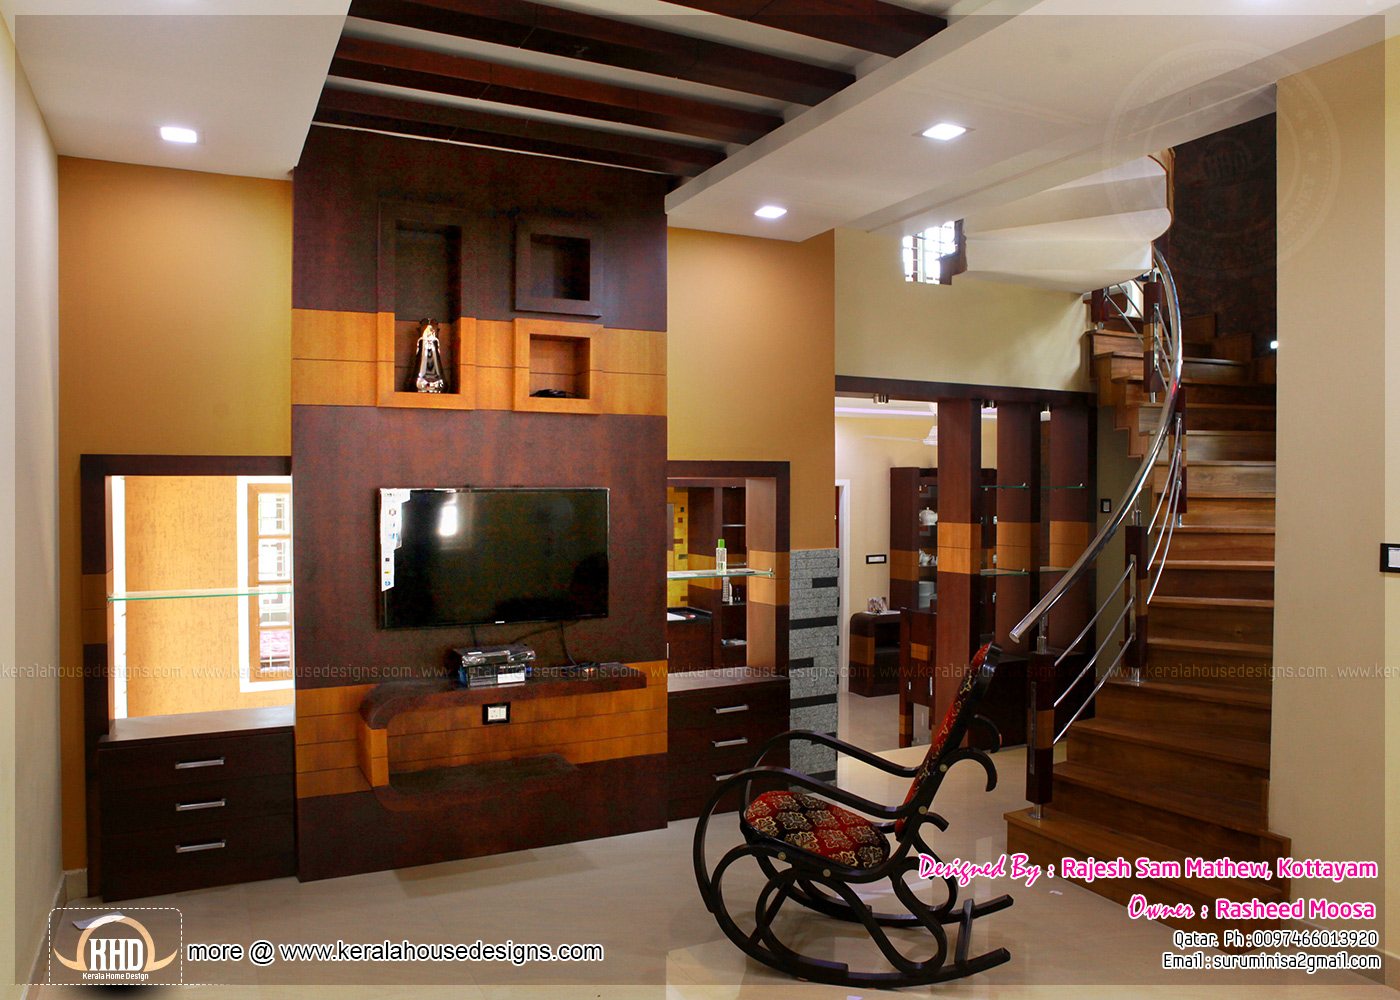 Kerala interior design with photos kerala home design Drawing room interior design photos